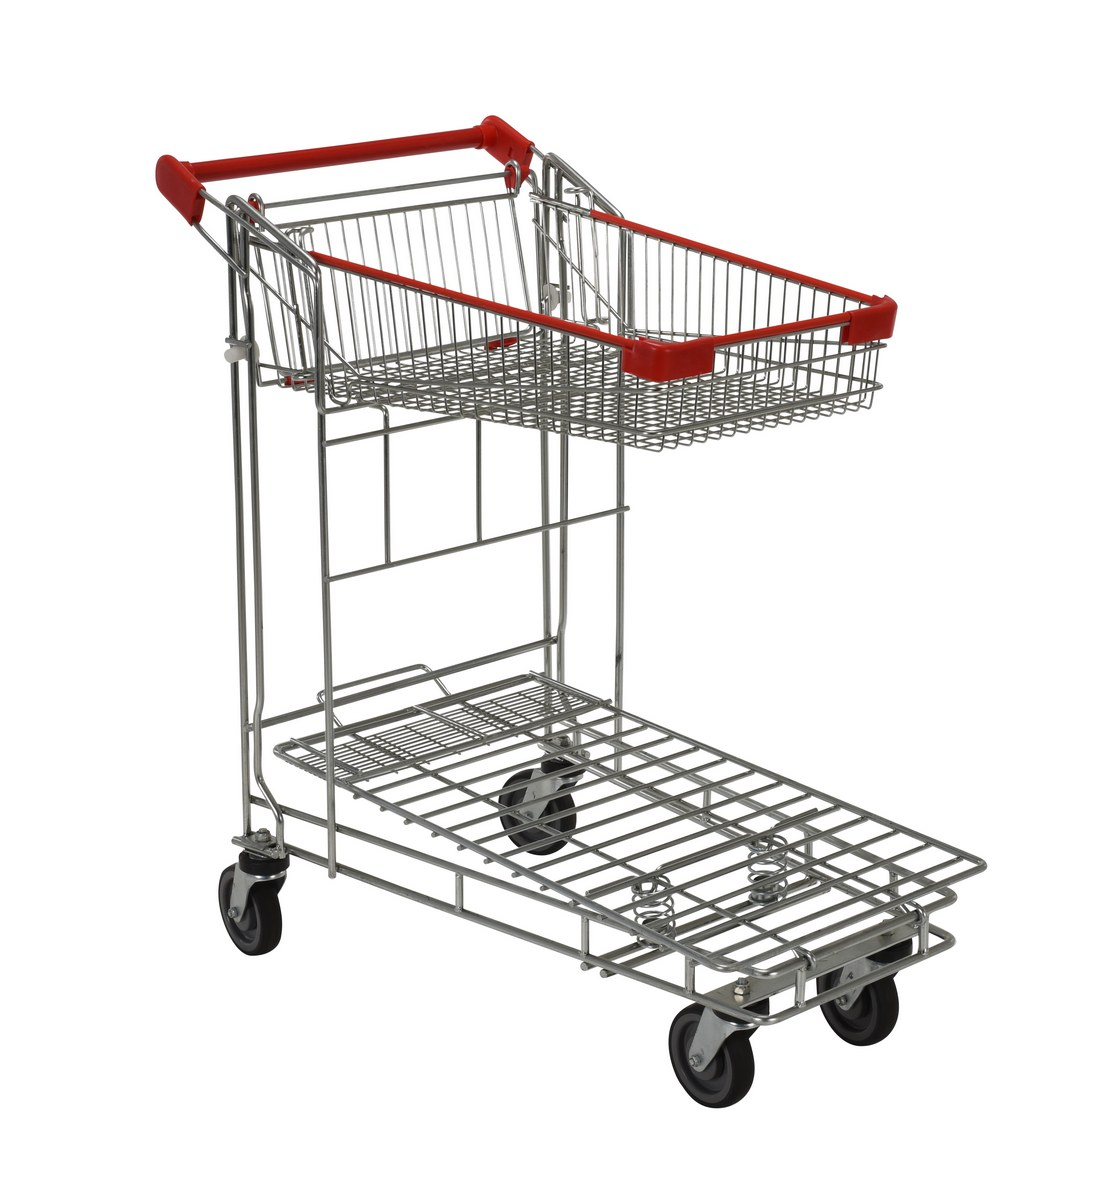 Vestil WIRE-S Nestable Wire Carts